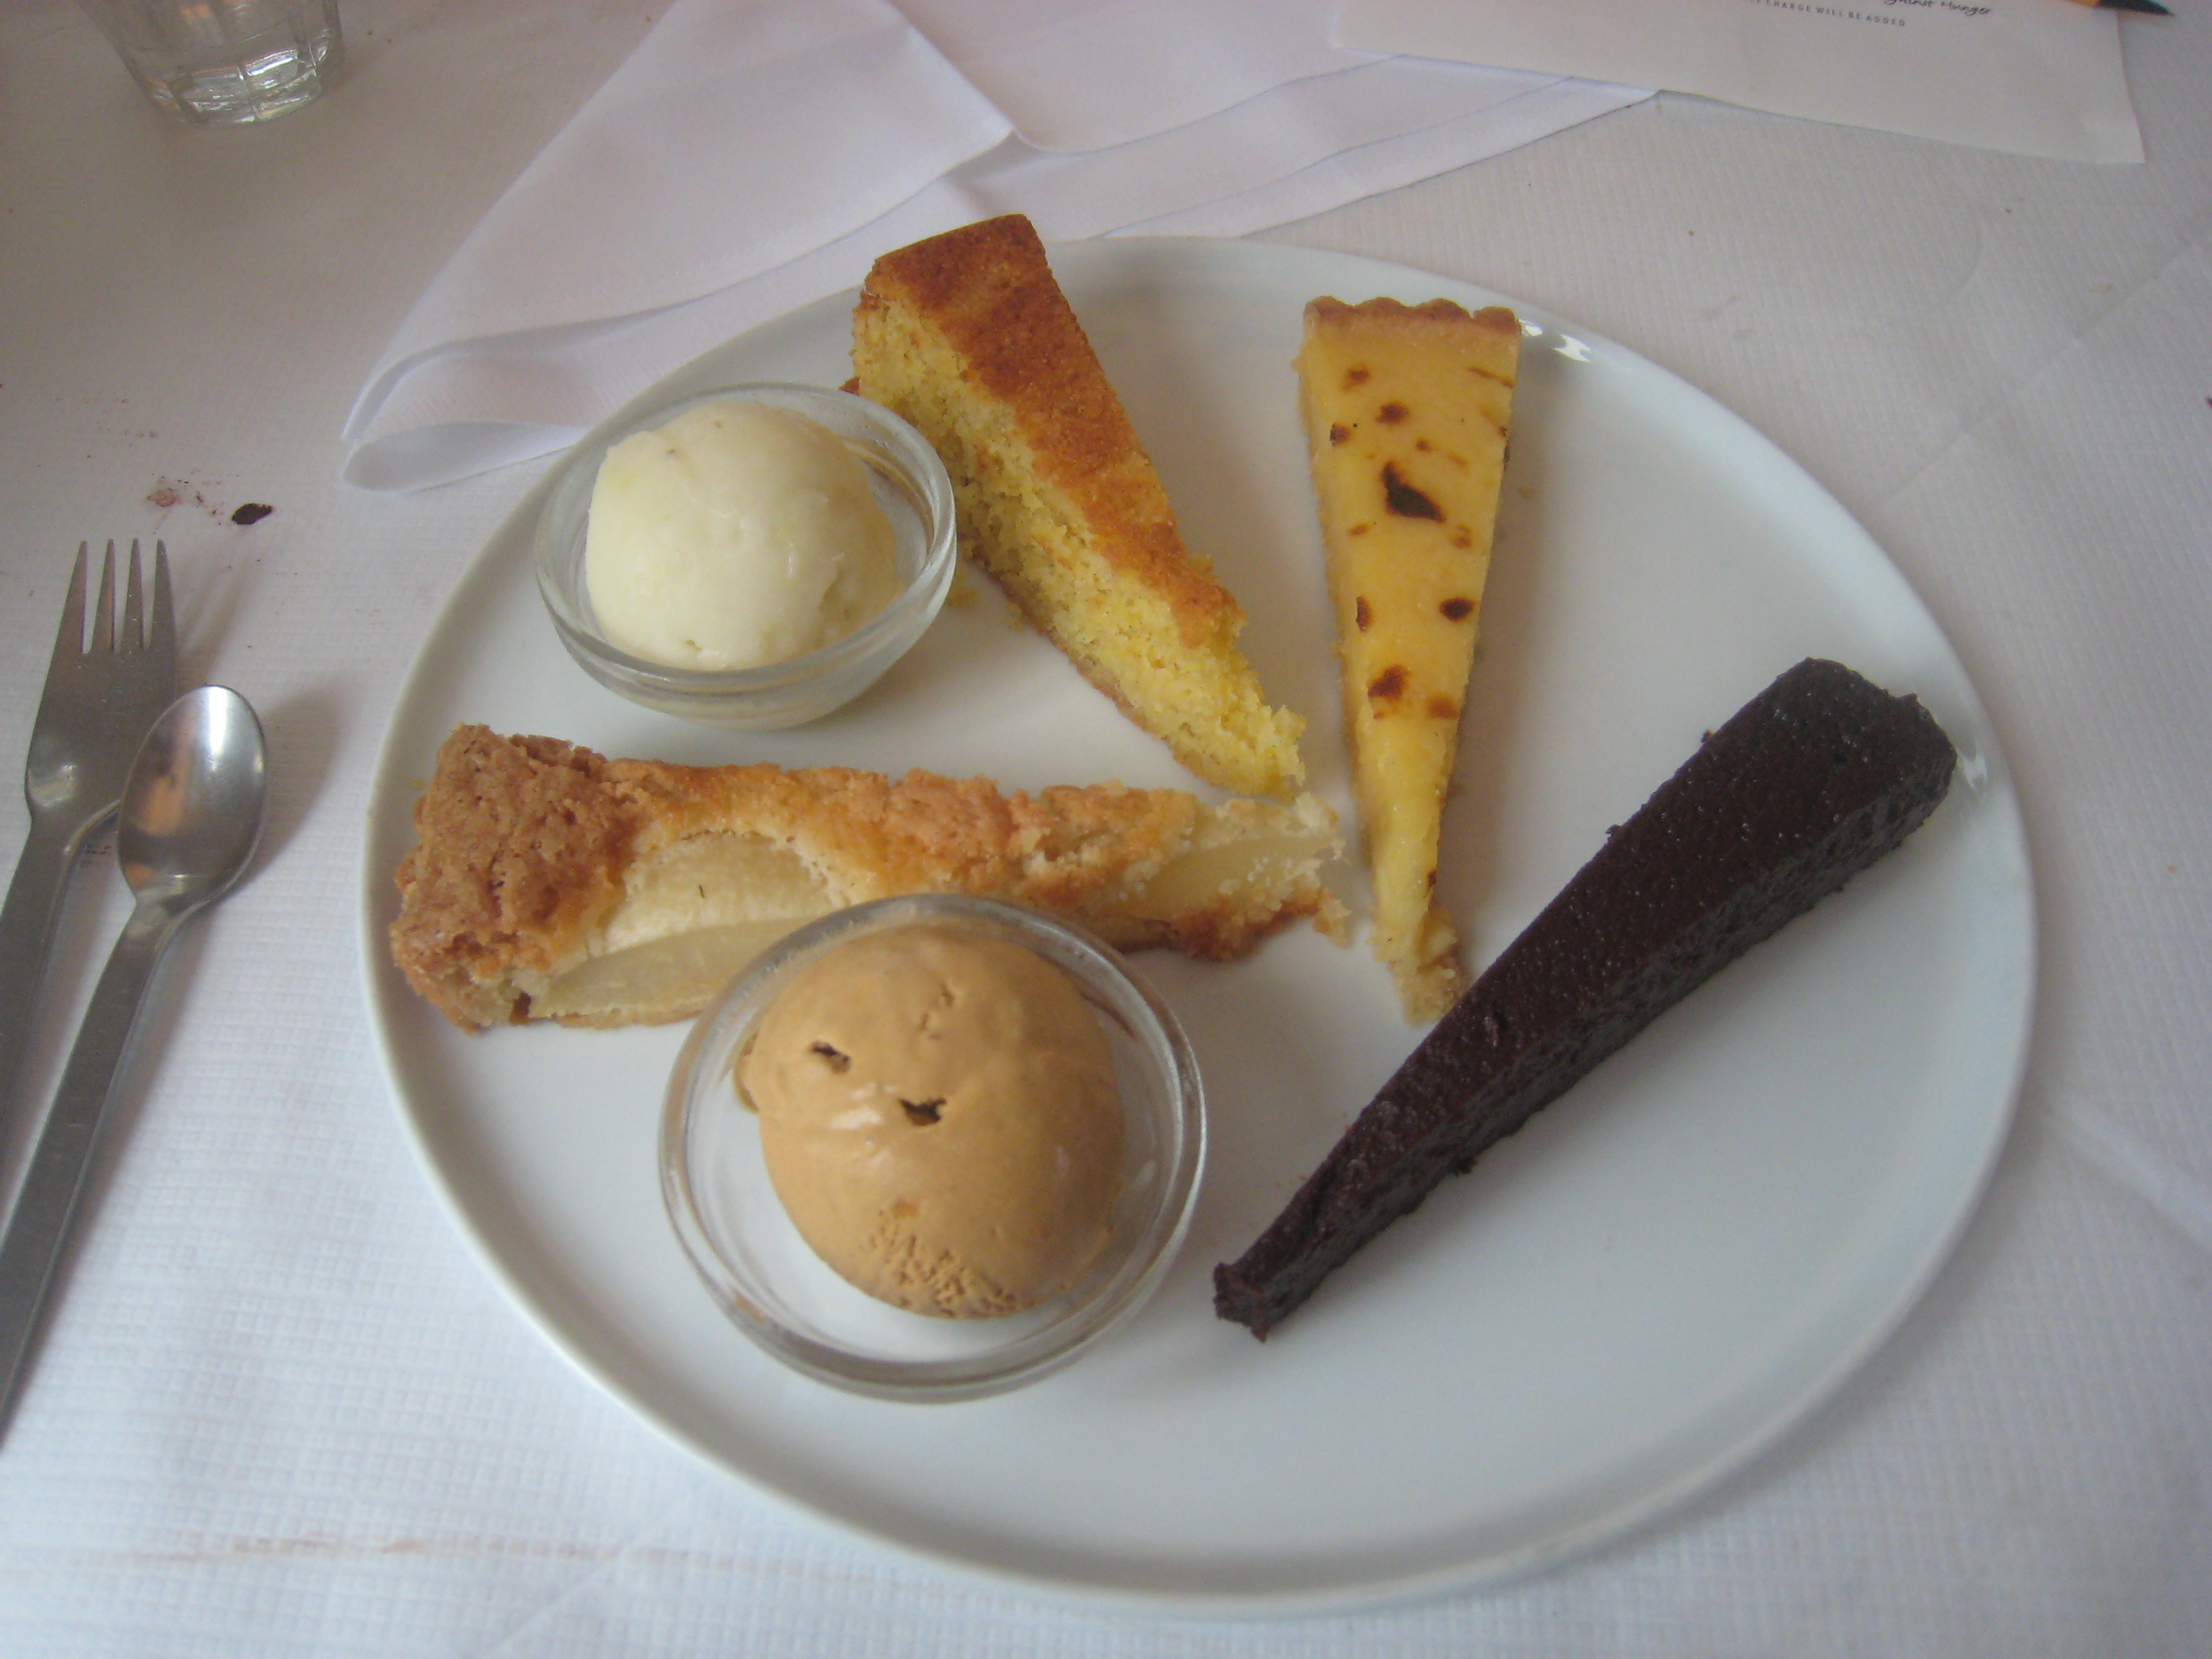 ... with Lemon Sorbet; Lemon Tart; Chocolate Nemeis; and Caramel Ice Cream